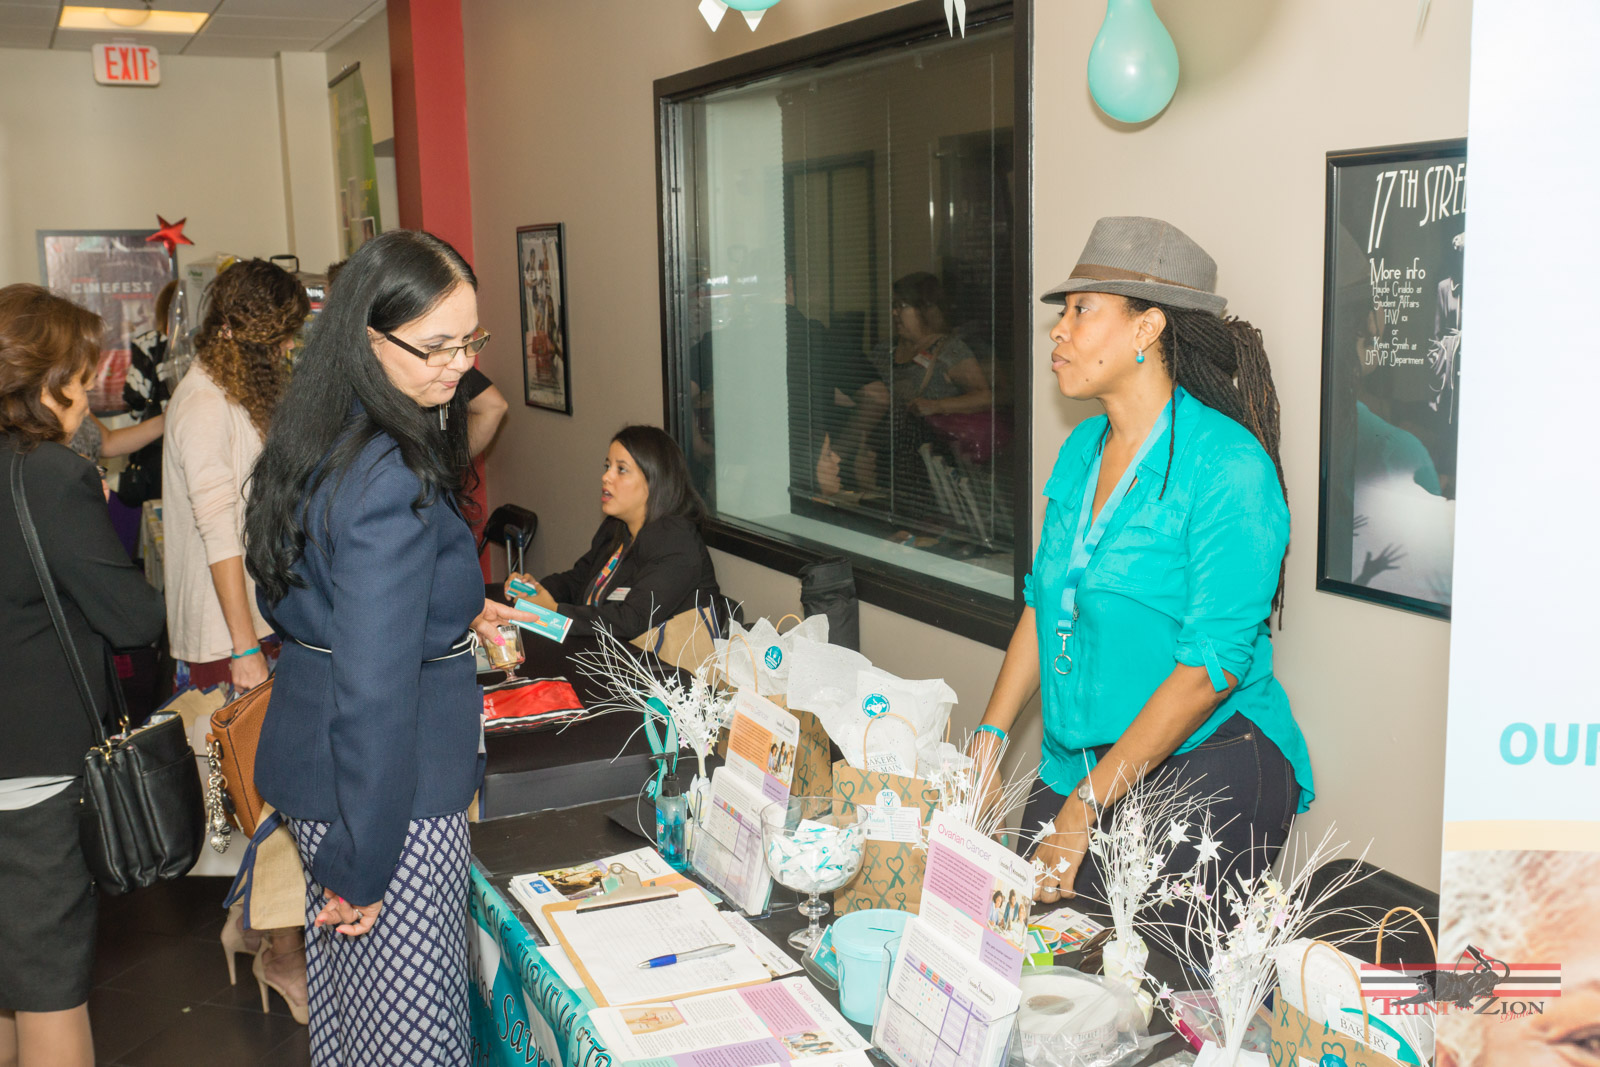 HispanicWomenSummit45 - Hispanic Women Health Awareness -Fort Lauderdale 2016